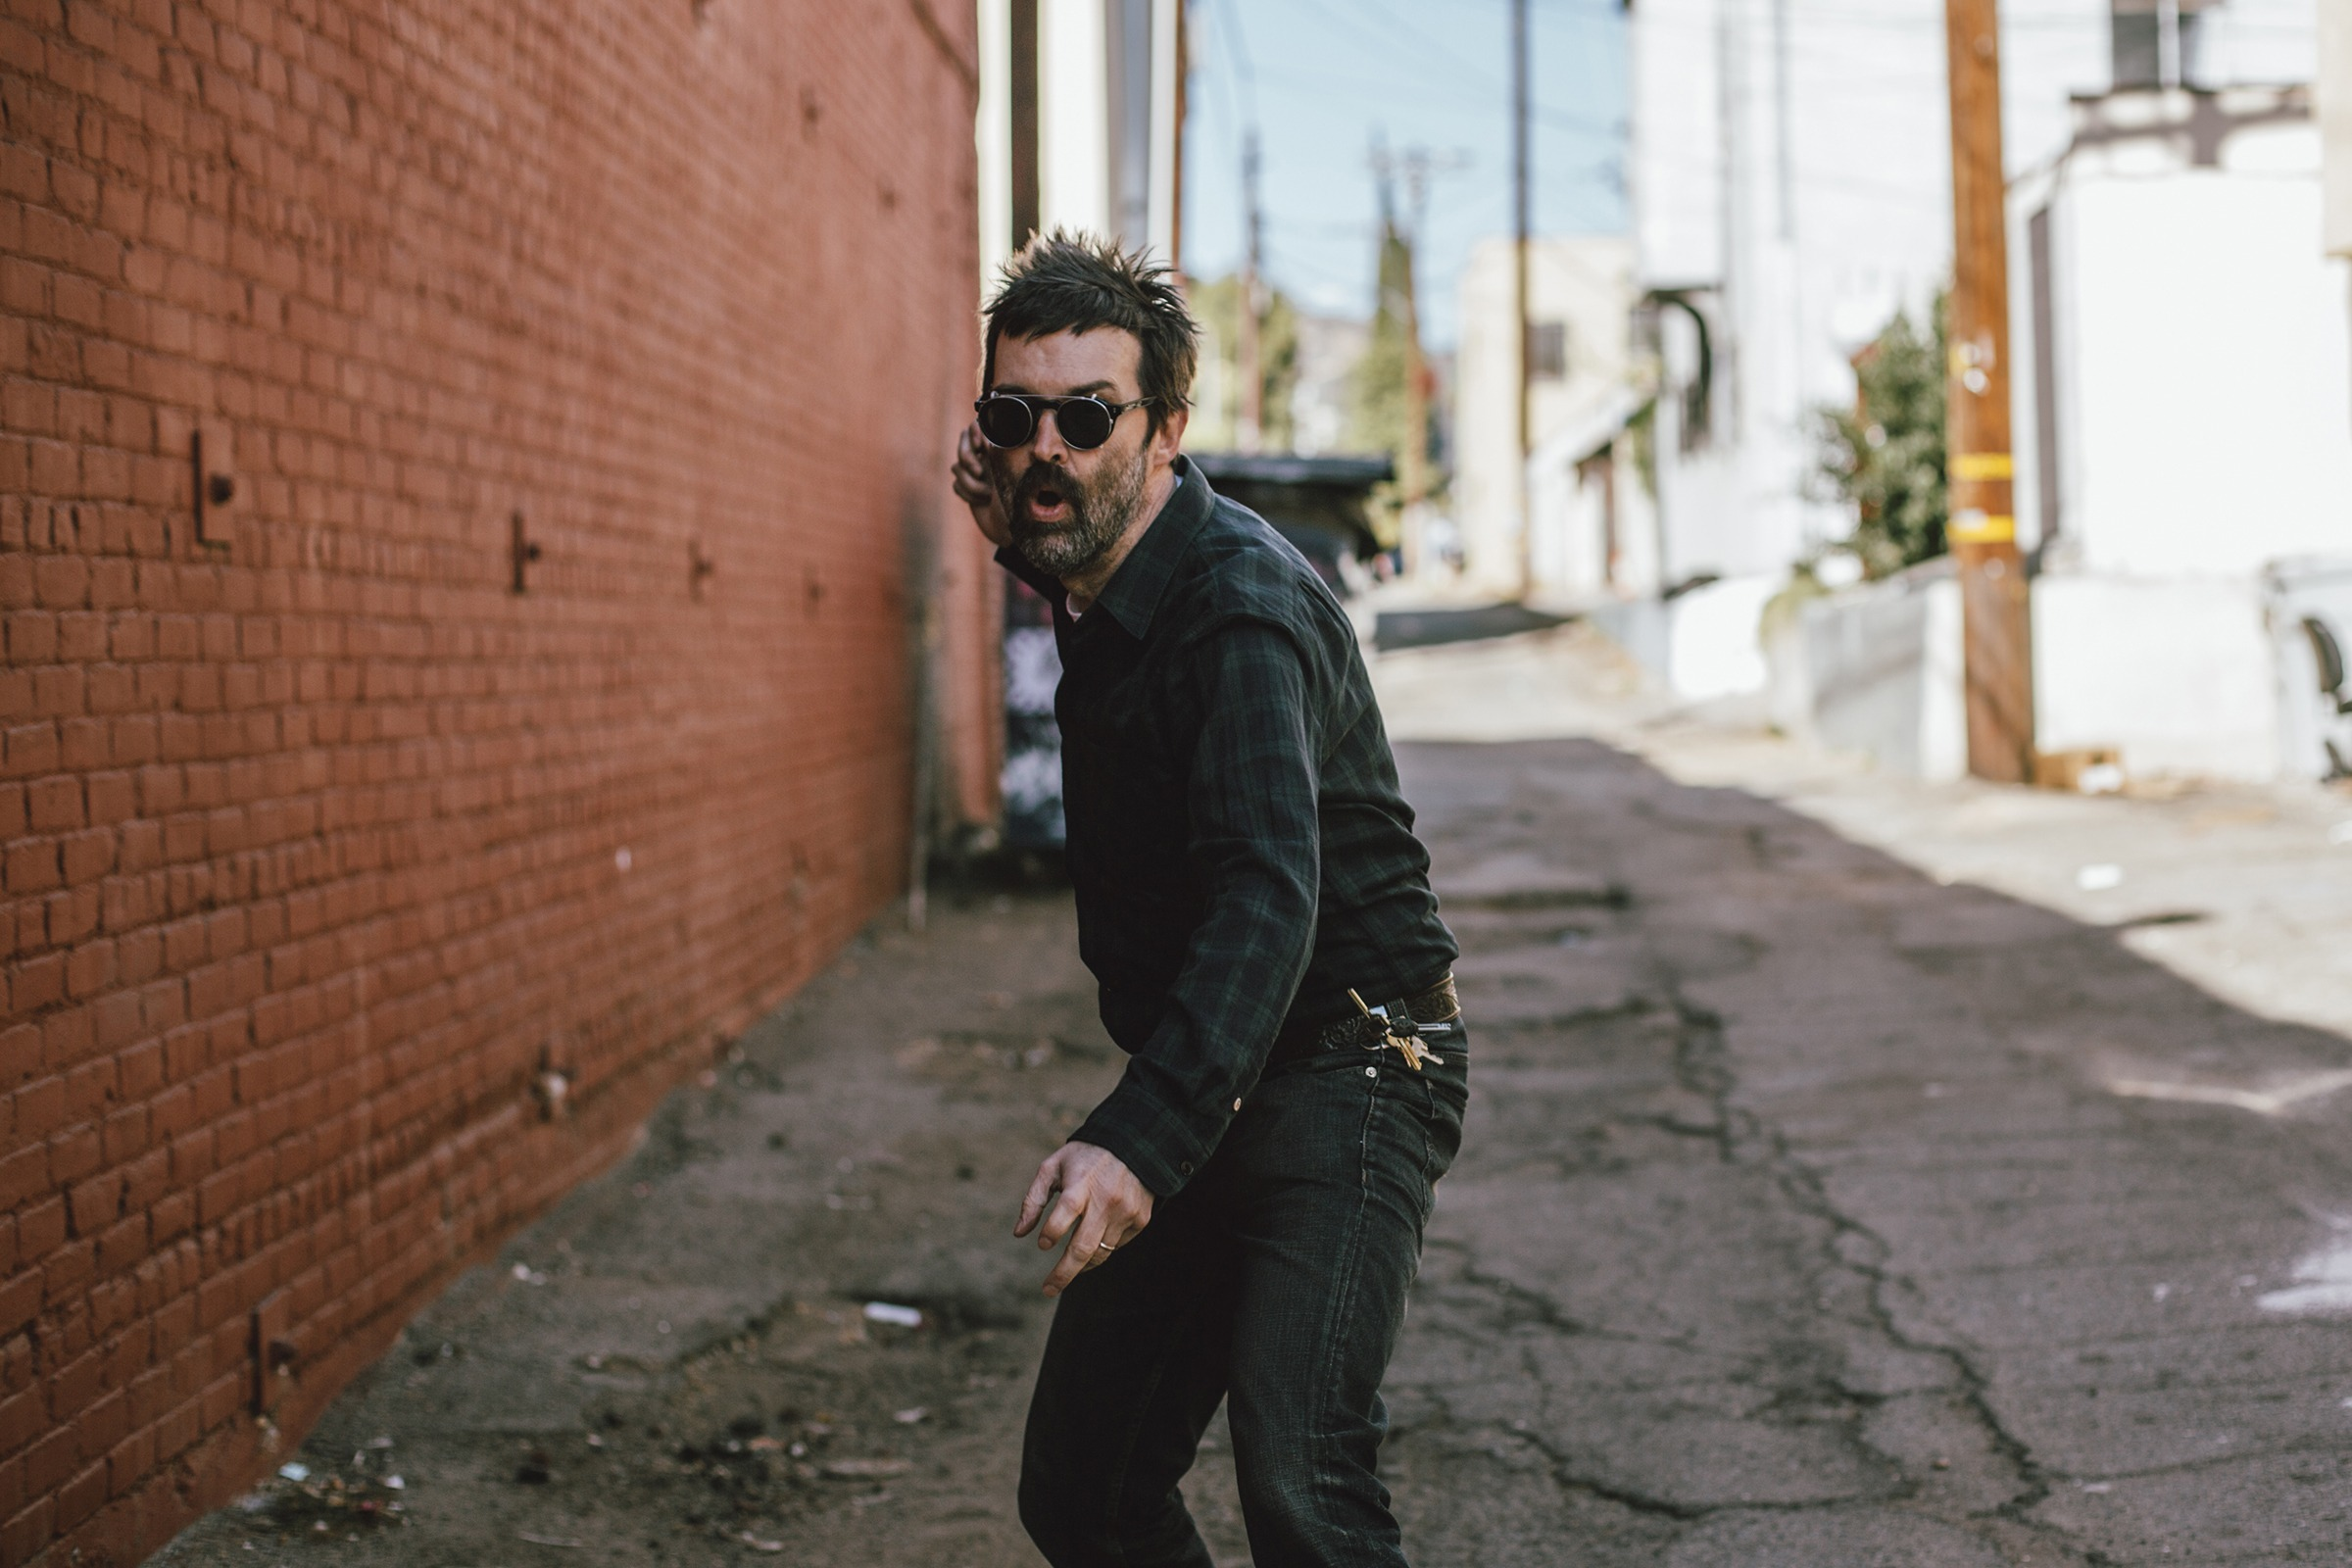 EELS release surprise single 'WHO YOU SAY YOU ARE' - Listen Now